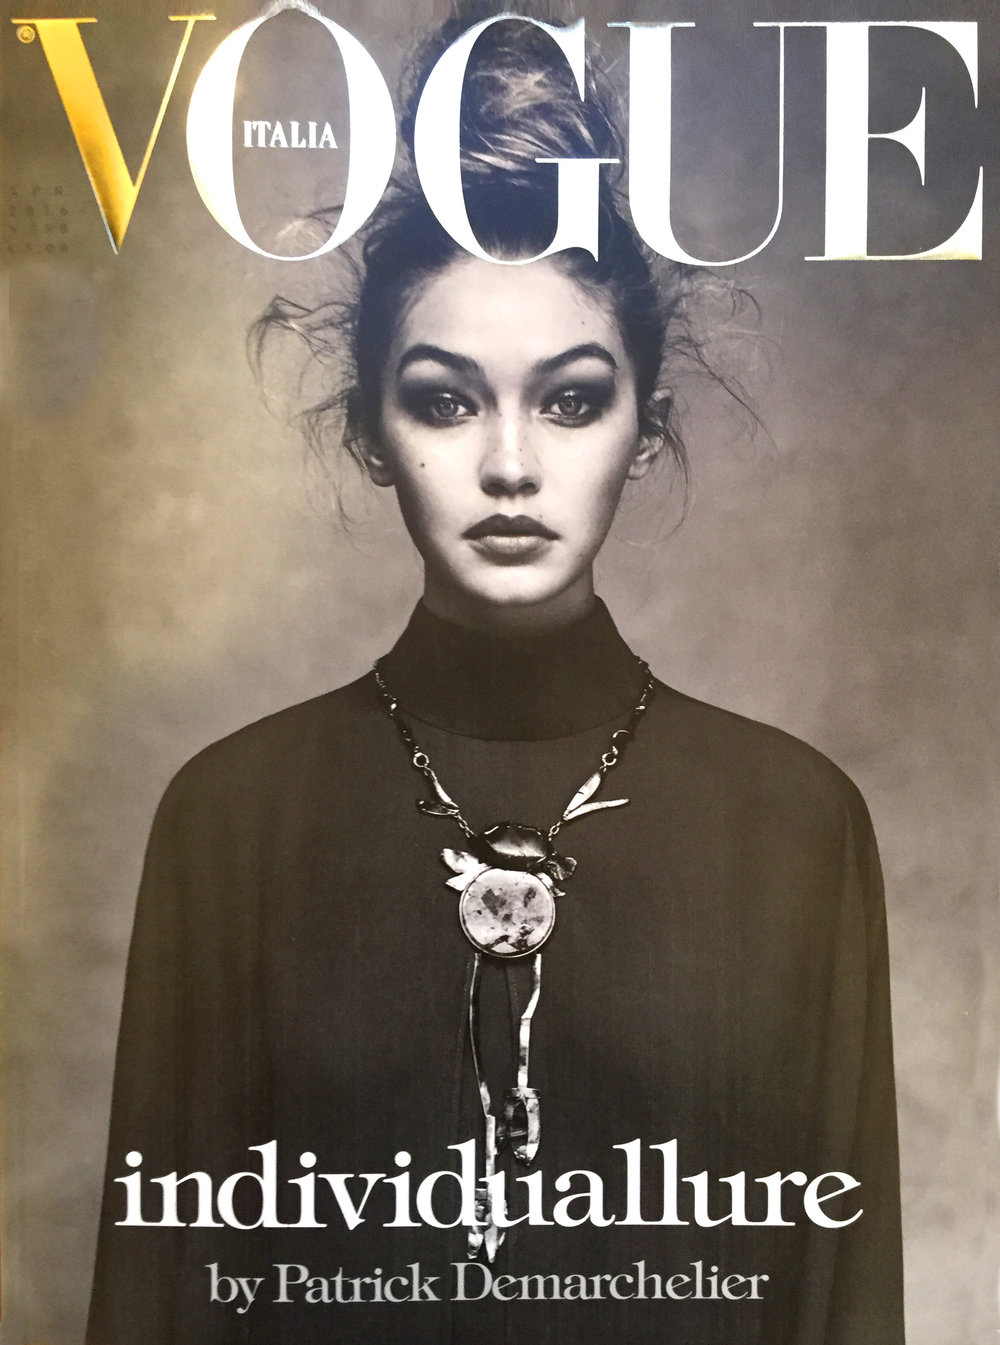 Vogue-Italia-April-2016-cover.jpg